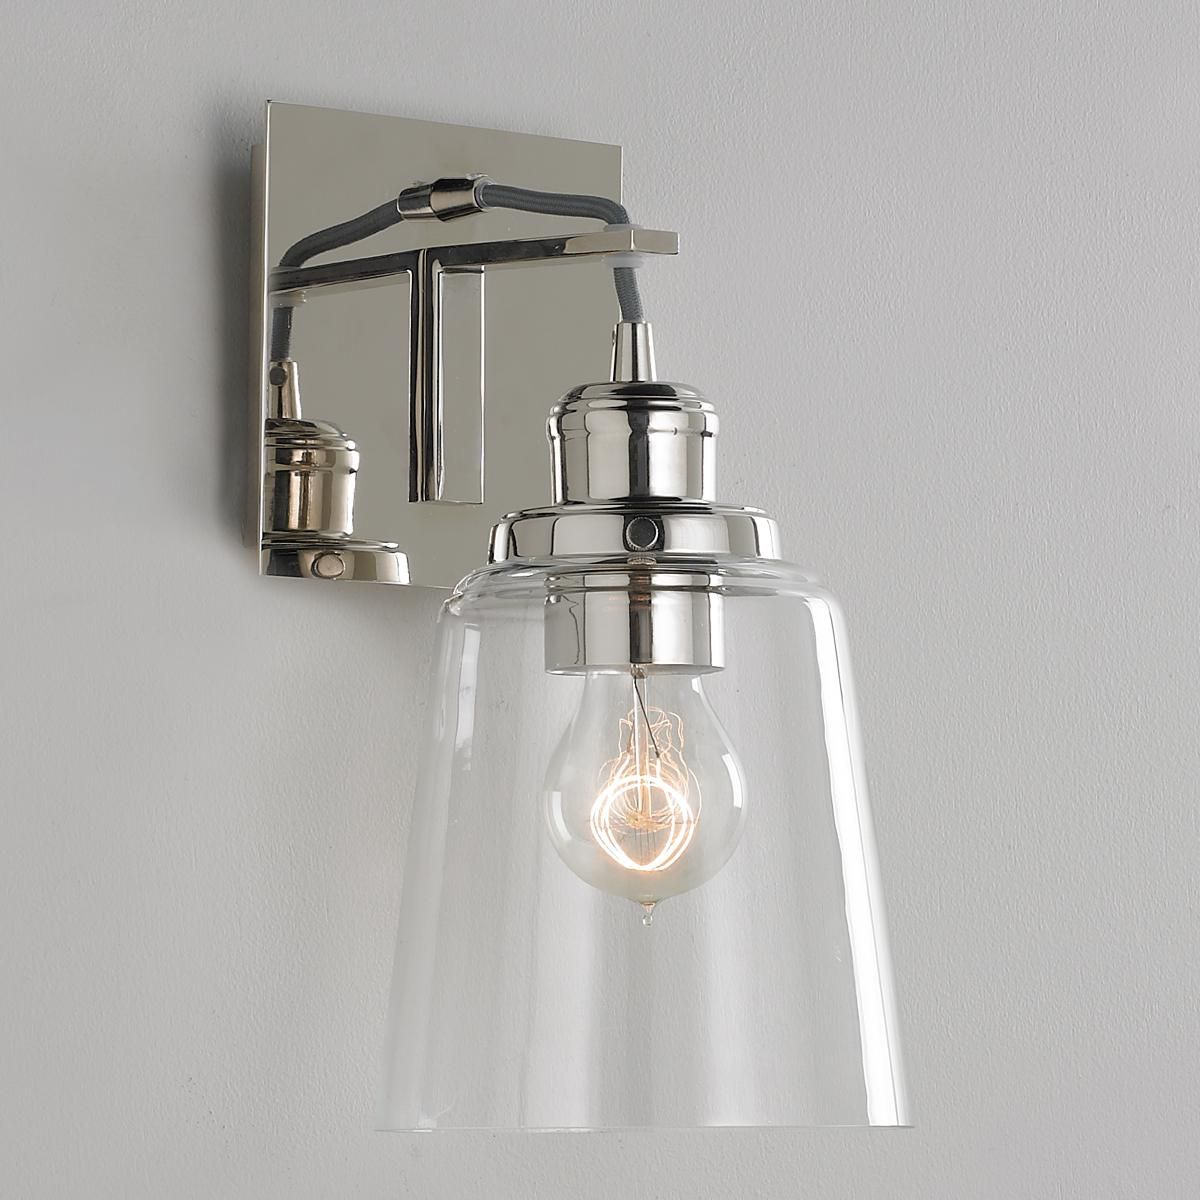 Vice wall sconce wall sconces polished nickel and antique brass vice wall sconce aloadofball Image collections